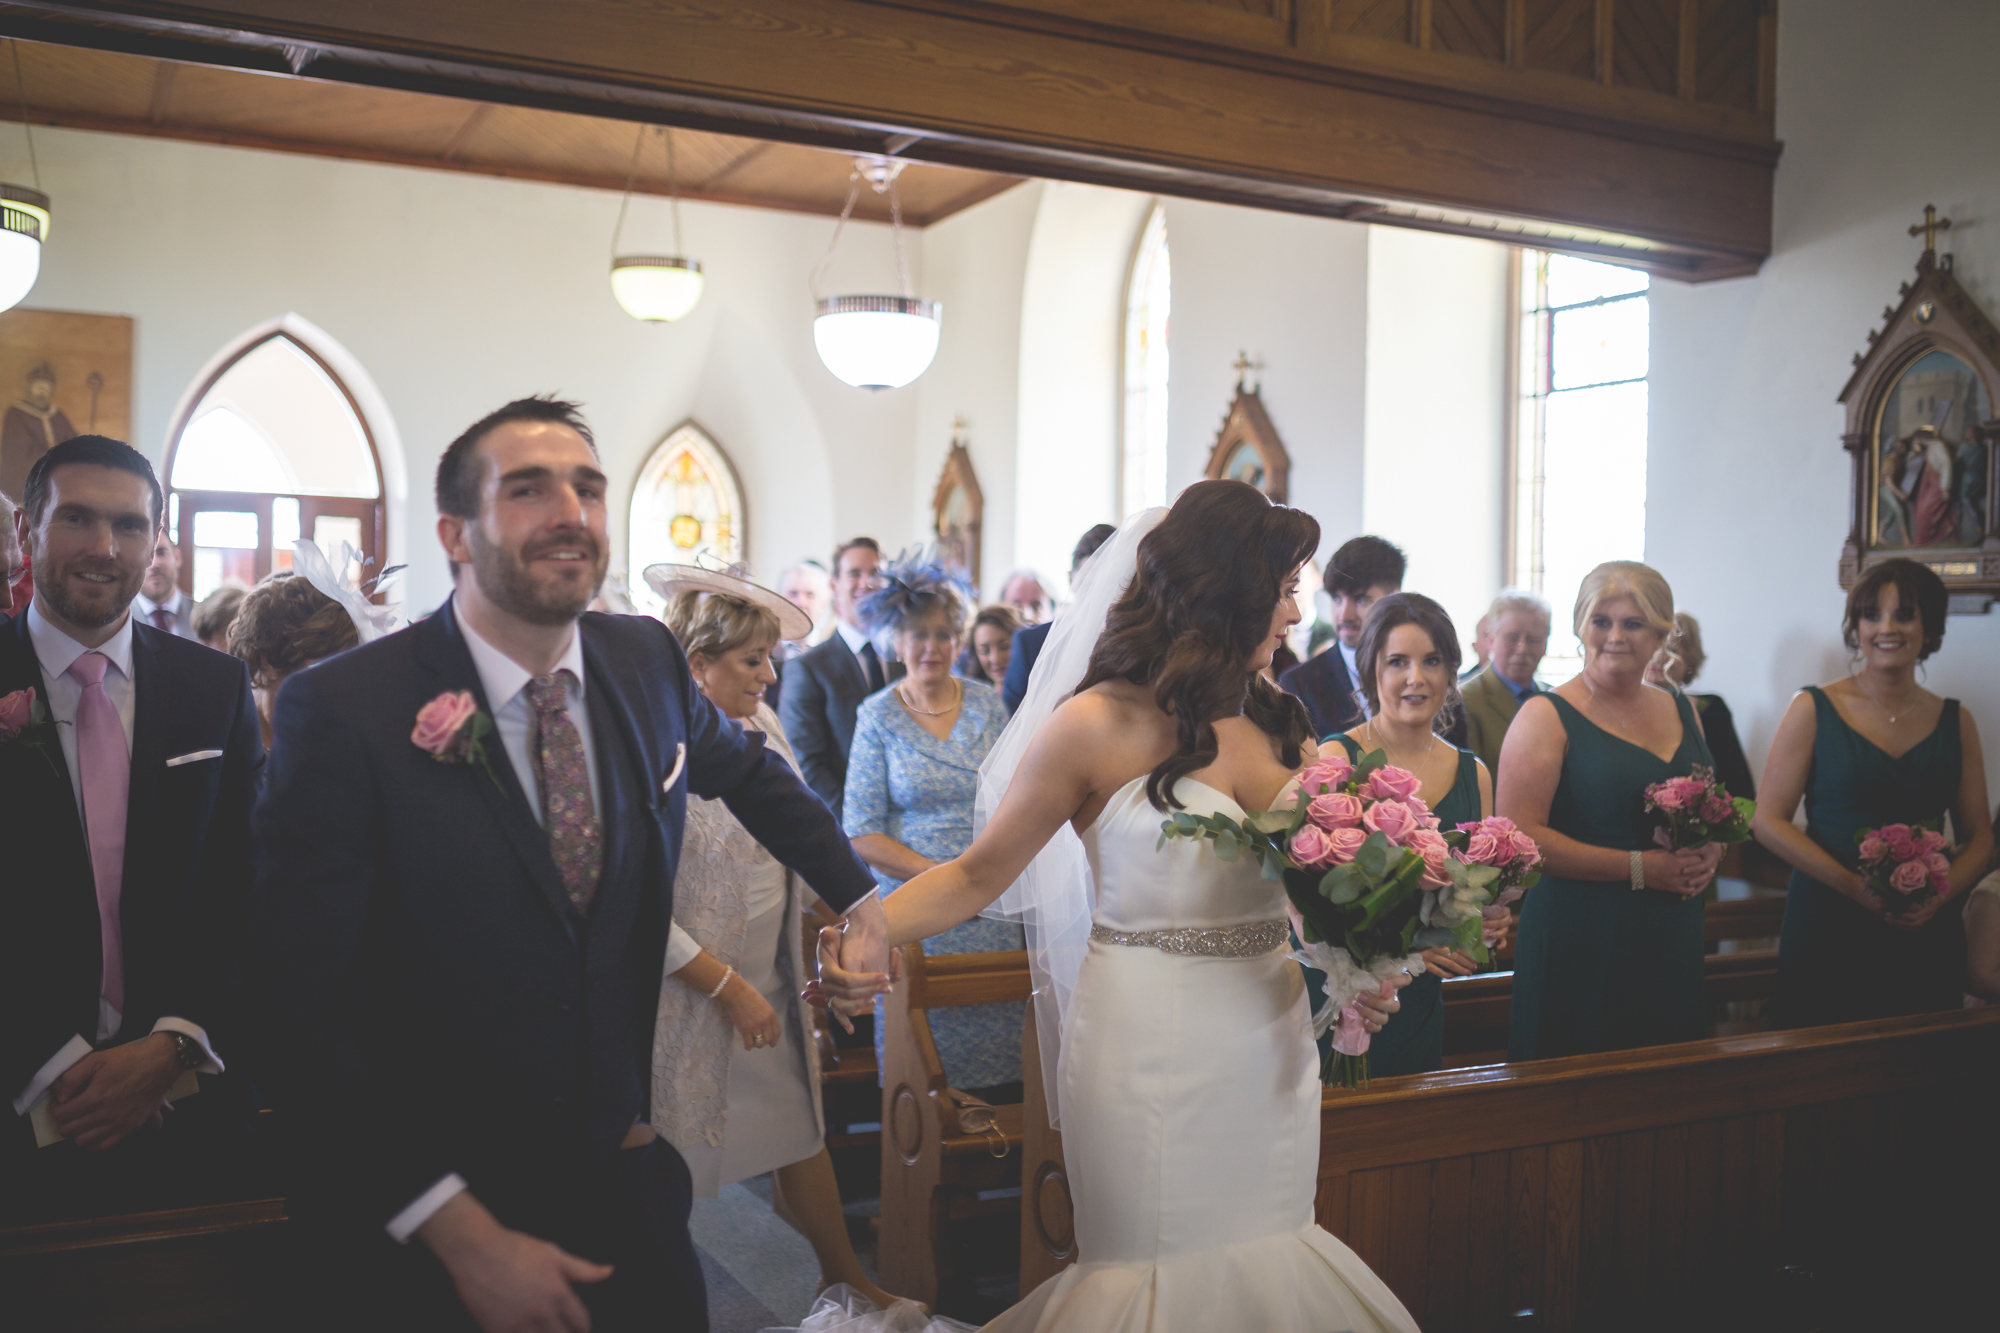 Francis&Oonagh-Ceremony-52.jpg